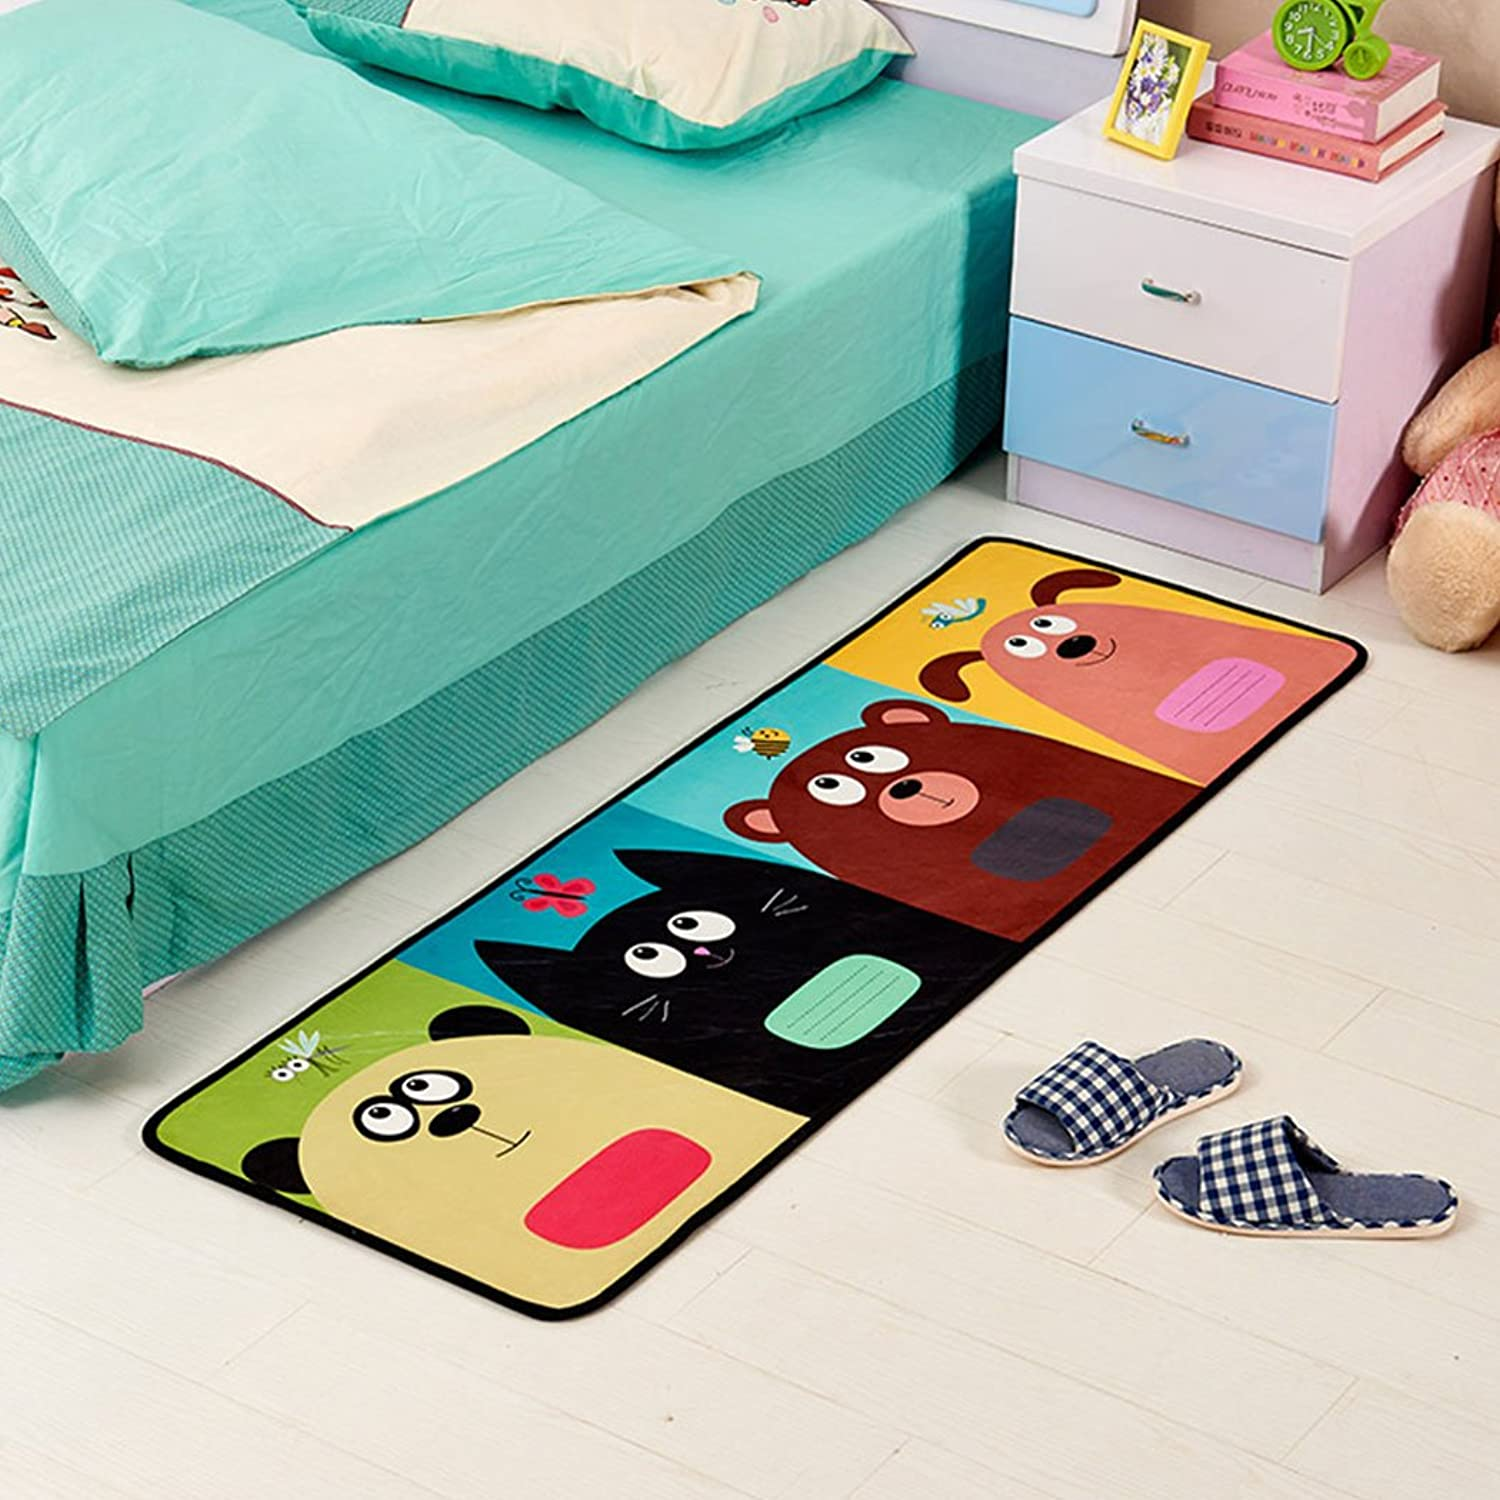 SUN-Shine Durable Home and Kitchen Rug Runners with Non-Slip Rubber Backing Indoor Doormats Floor Mat Carpet, Cute Pets Animal